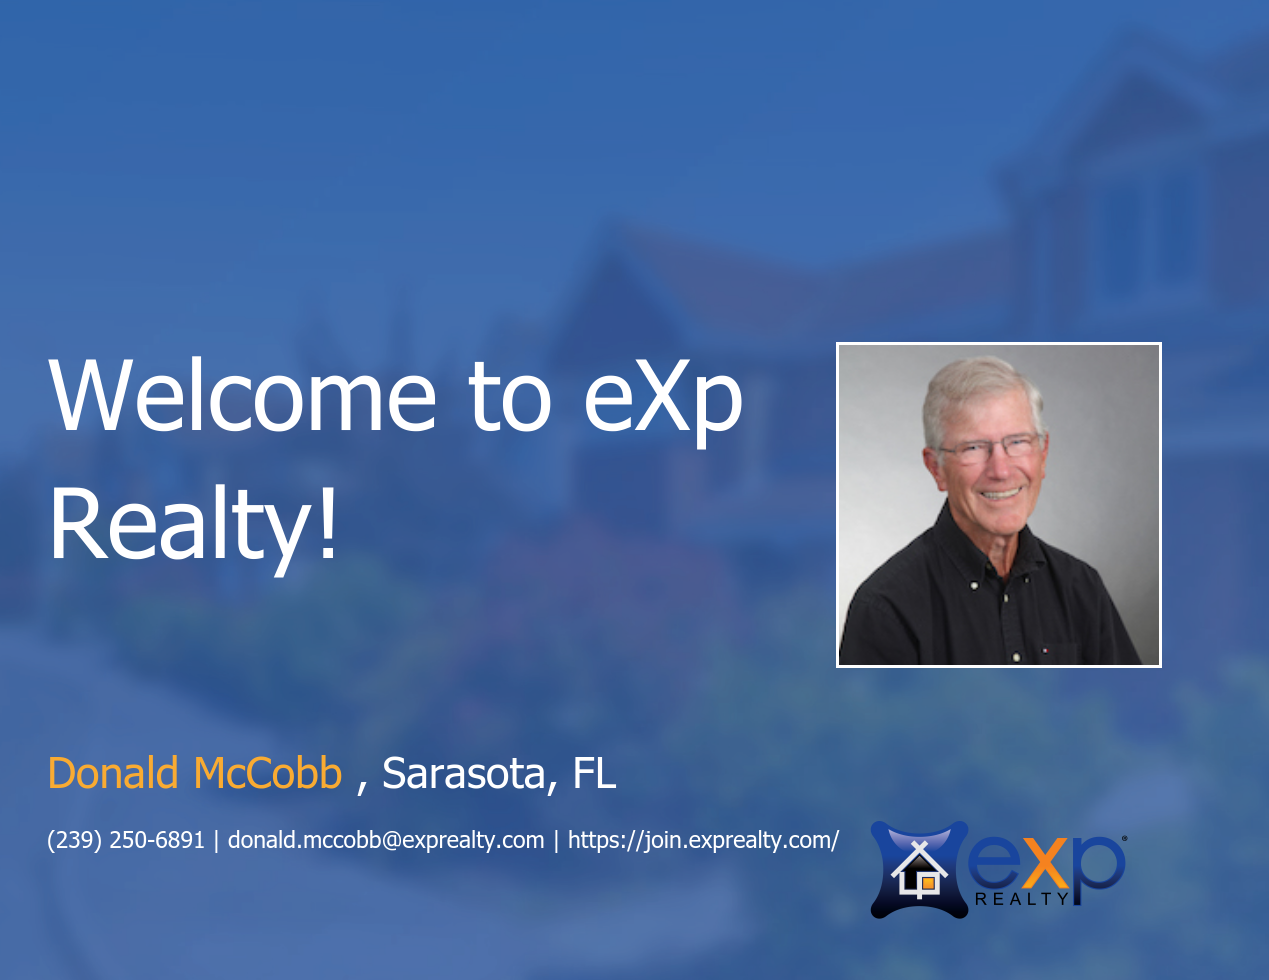 Donald McCobb Joined eXp Realty!